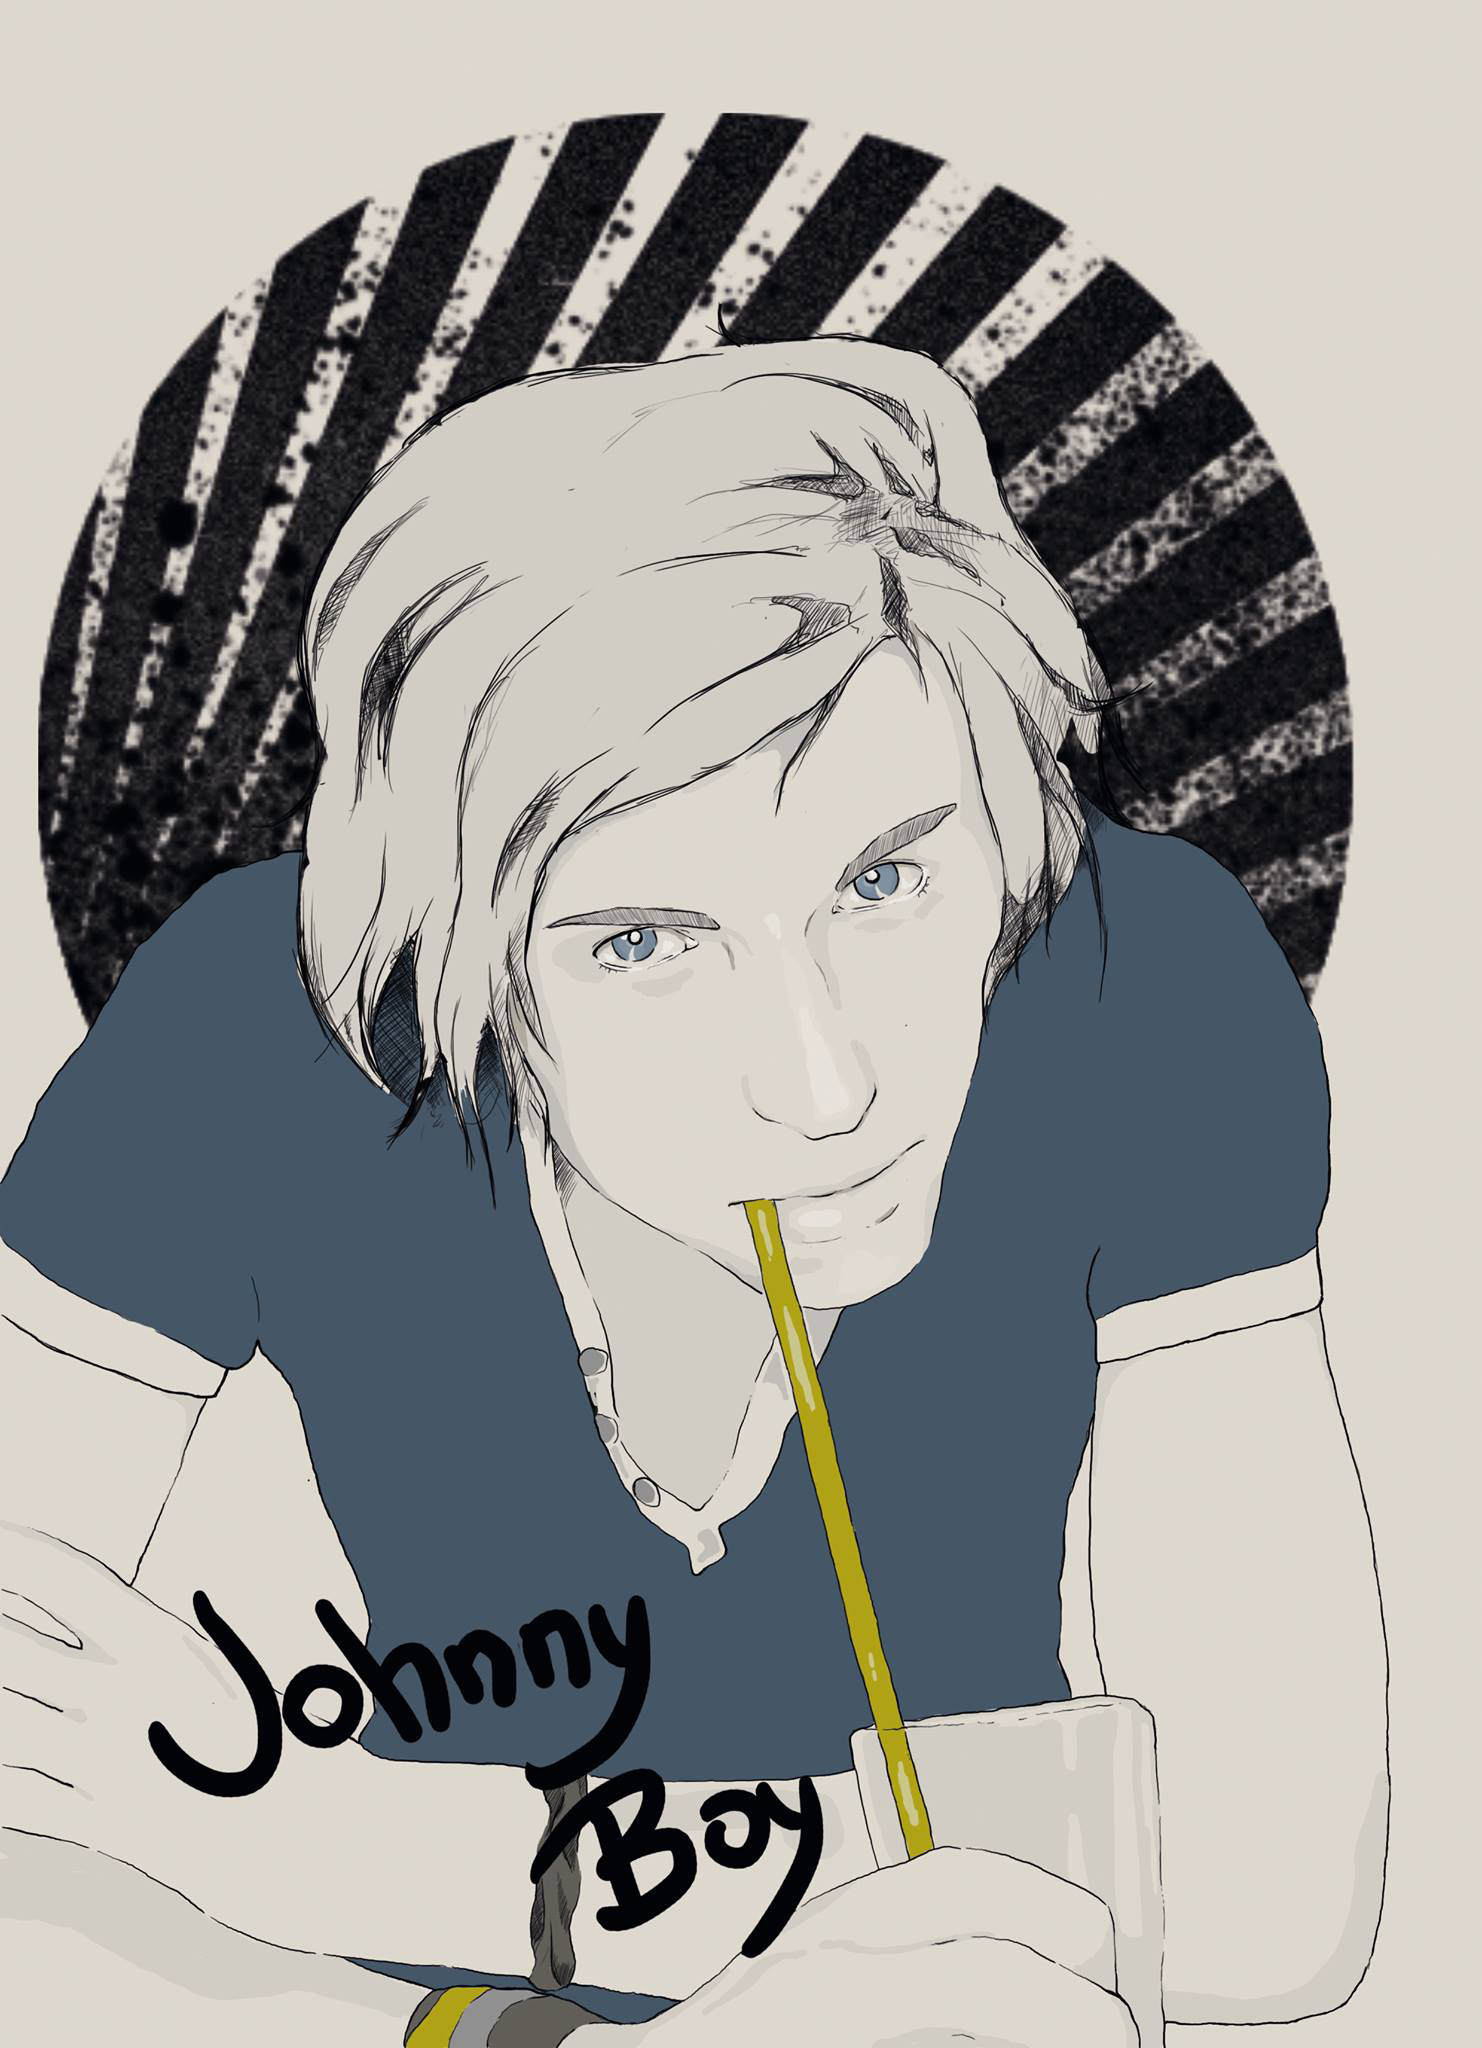 johnnyBoy